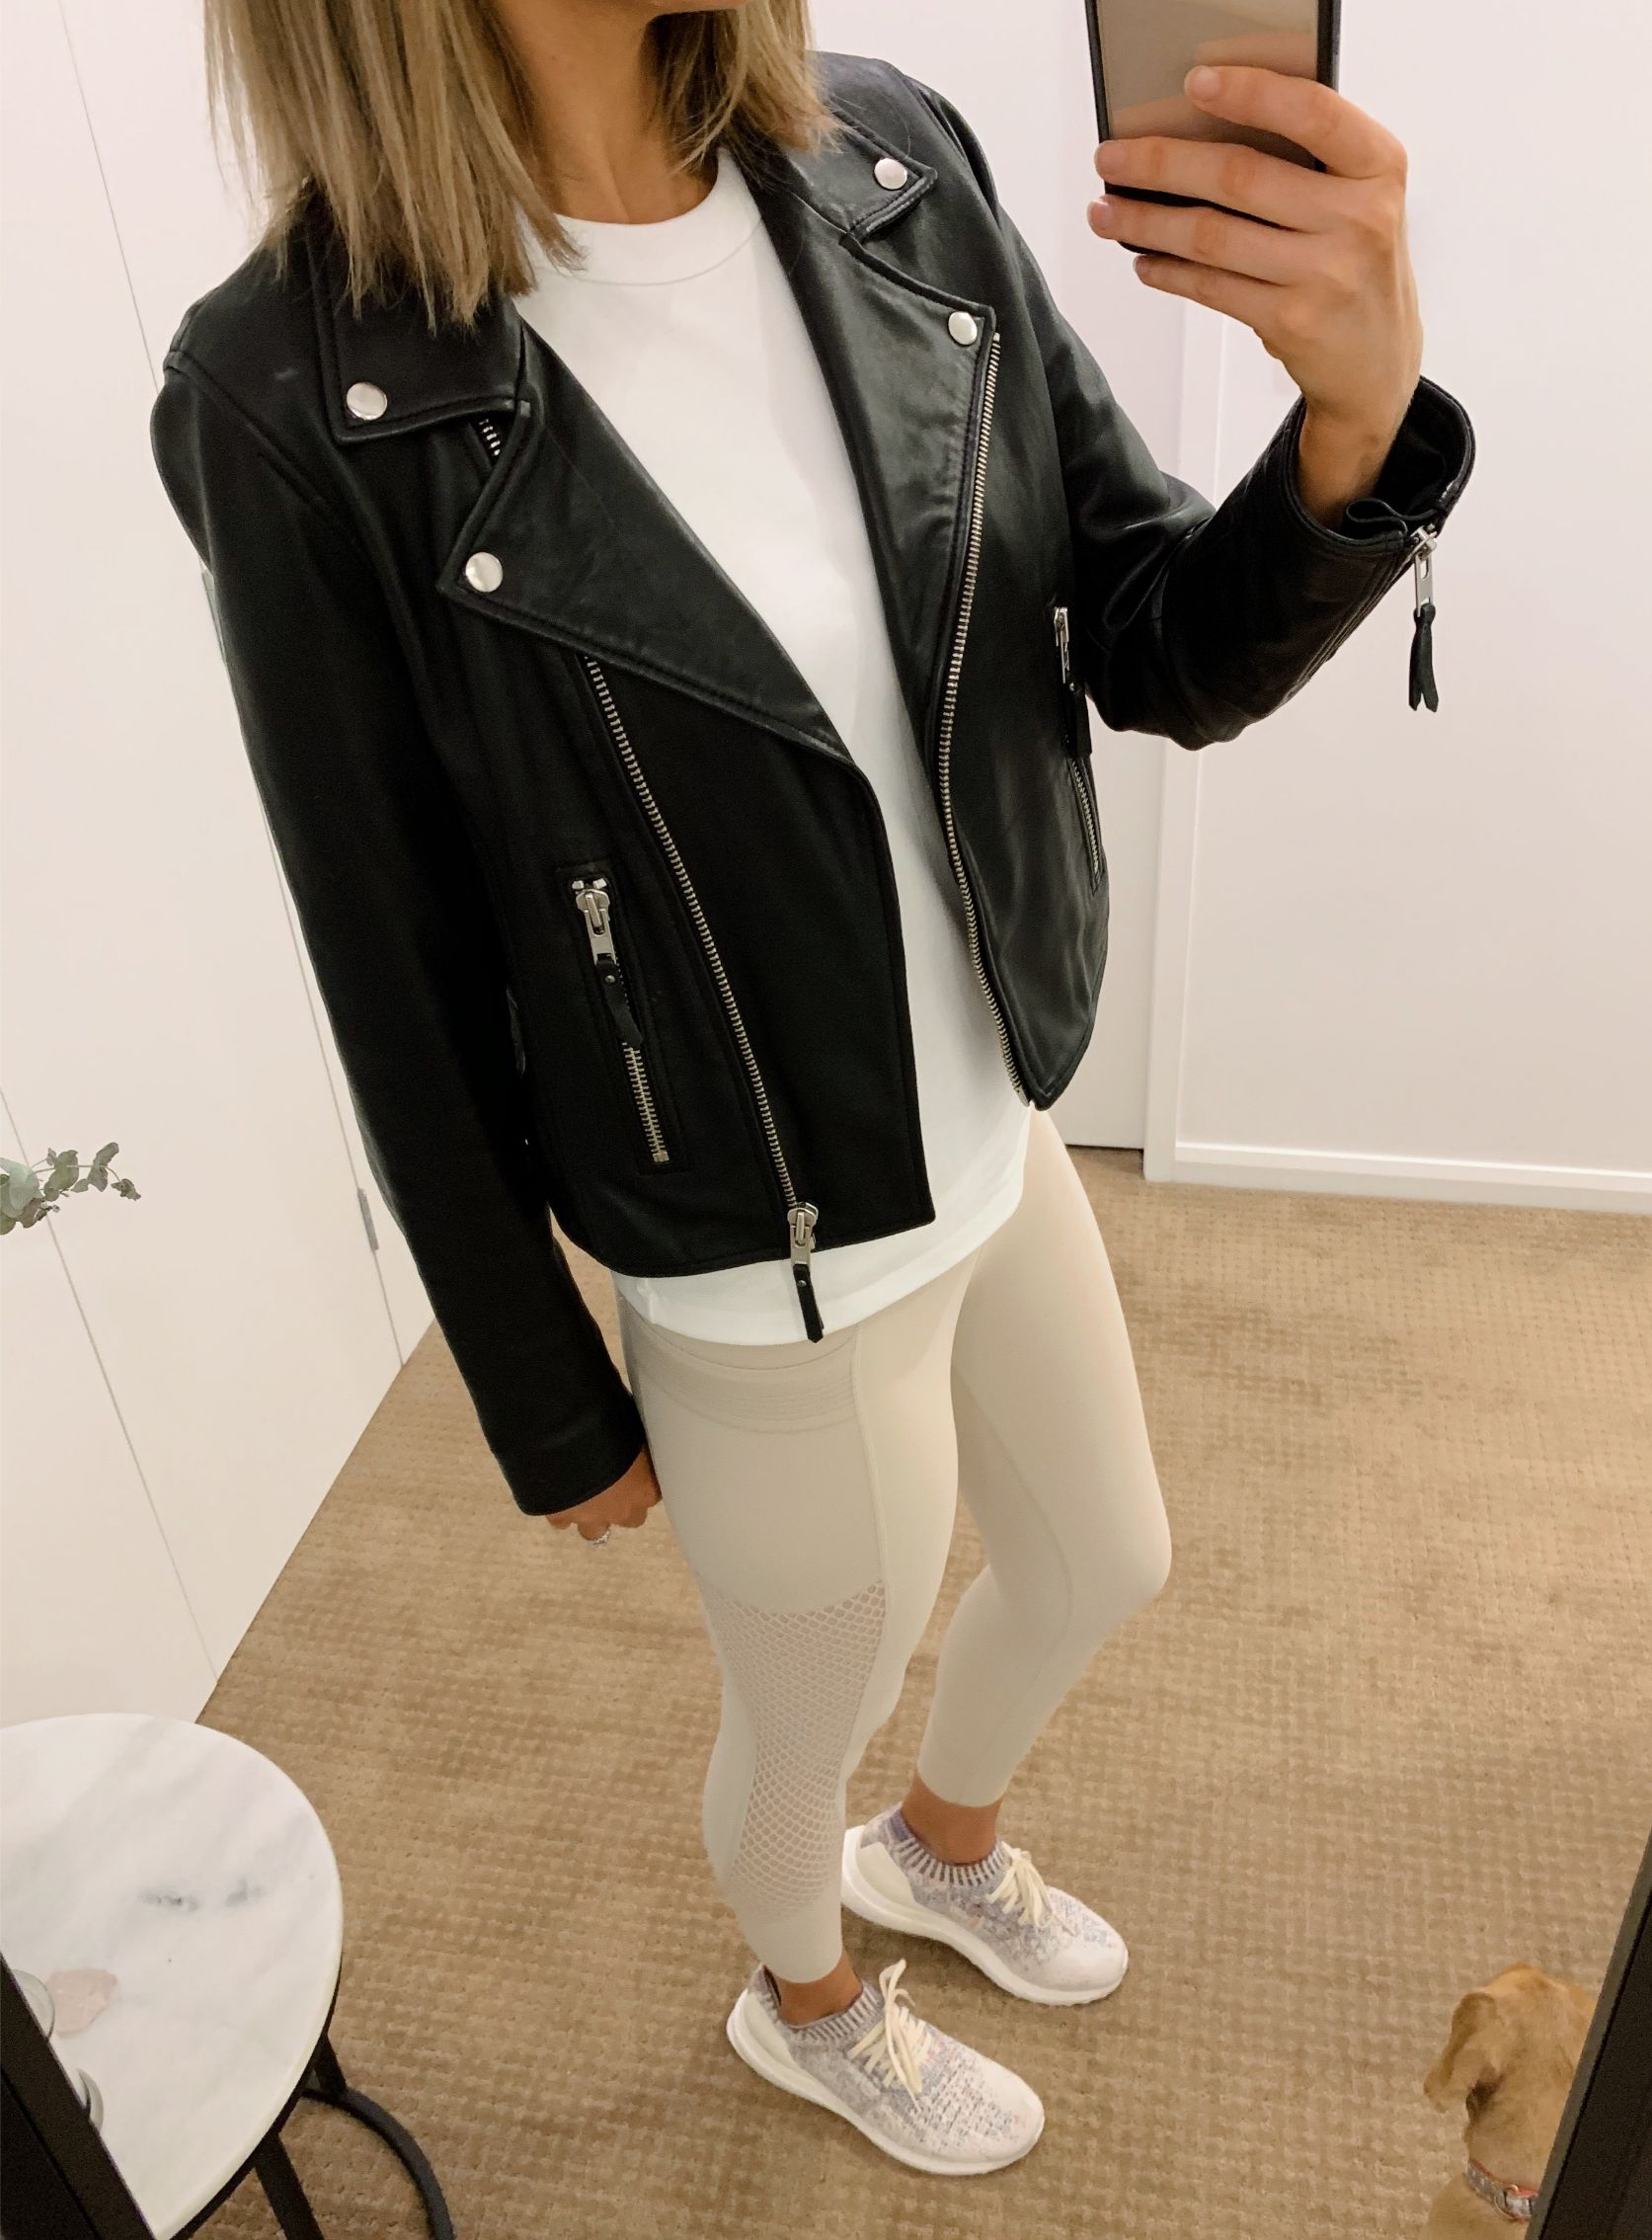 athleisure outfit ideas pinterest fashion blogger style neutral athletic wear workout everyday outfits errands black leather biker jacket white tee and leggings 2